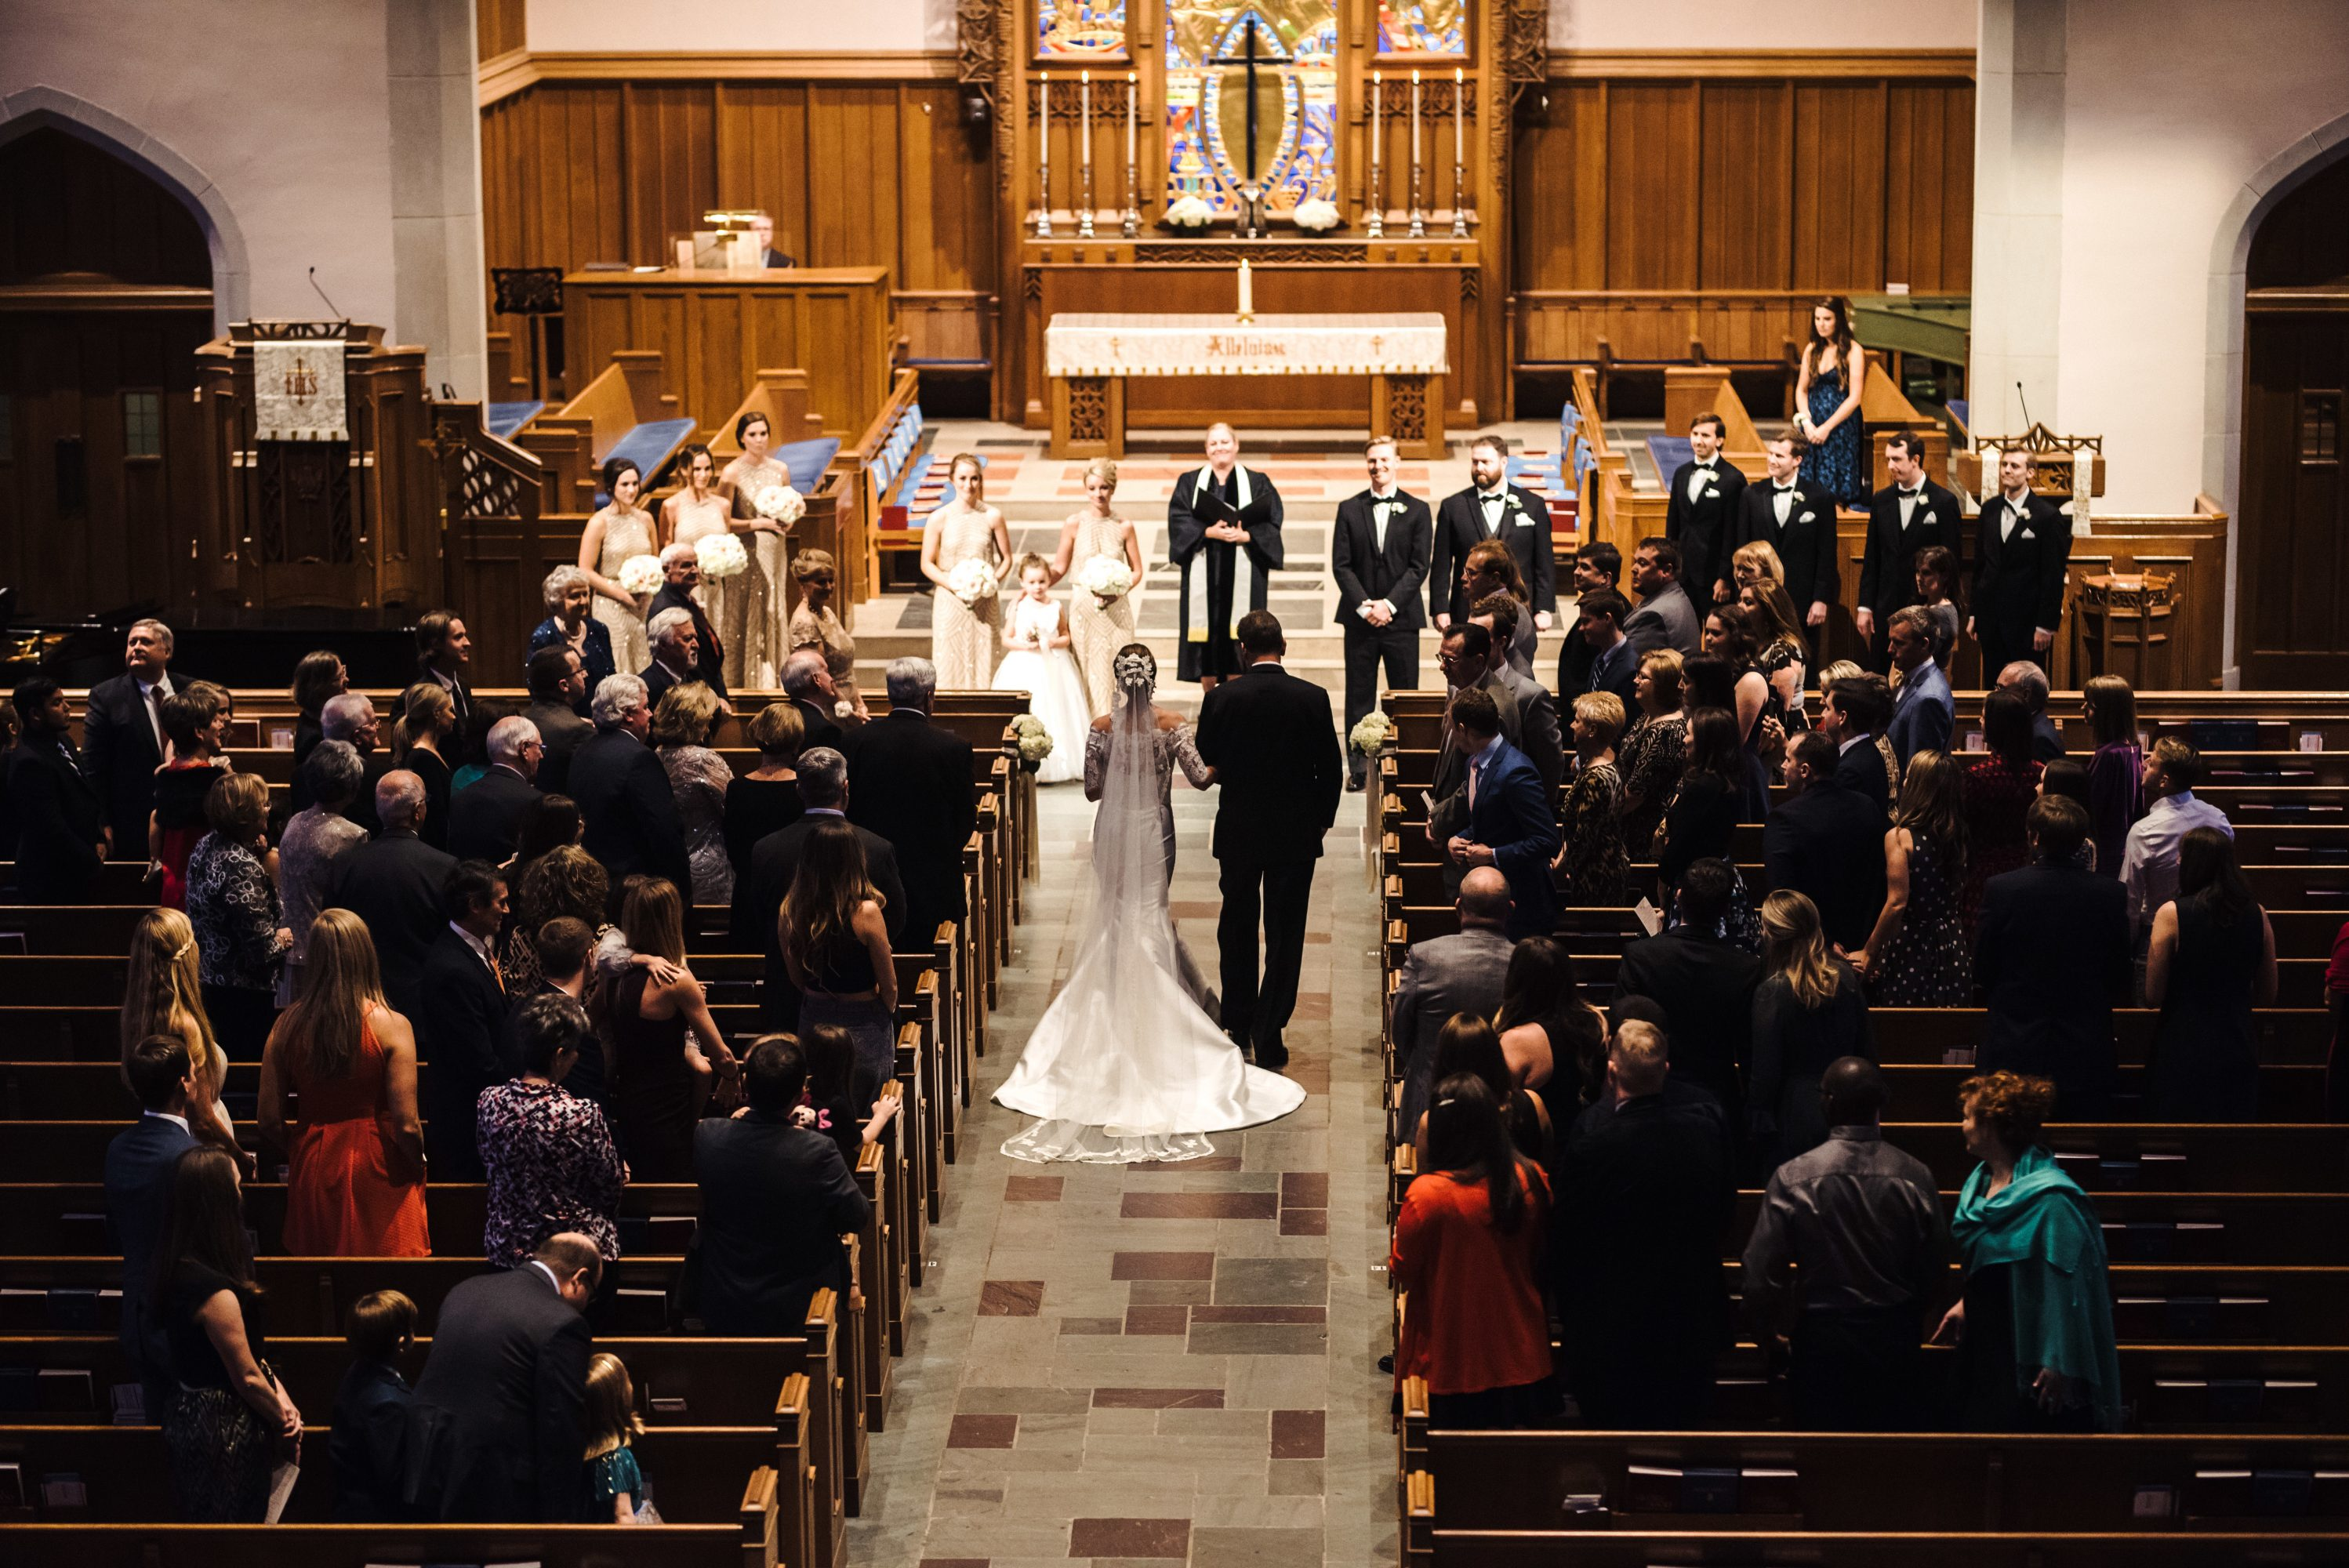 Wedding ceremony held at Myers Park Presbyterian Church in Charlotte North Carolina captured by Anchor and Veil Photography